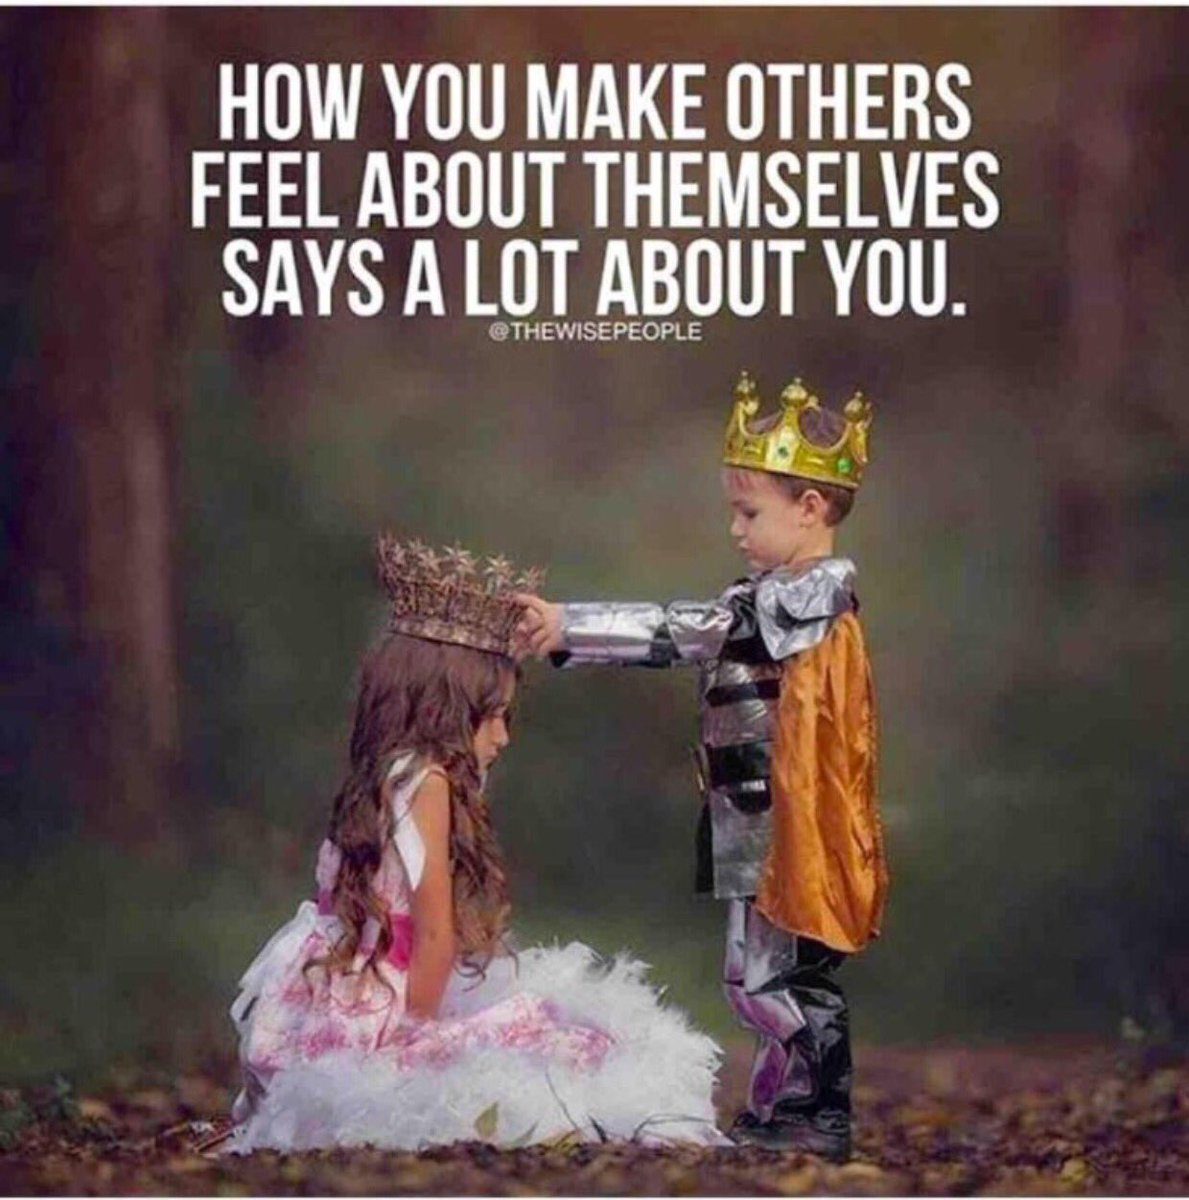 Lives of others quote How you make others feel about themselves says a lot about you.